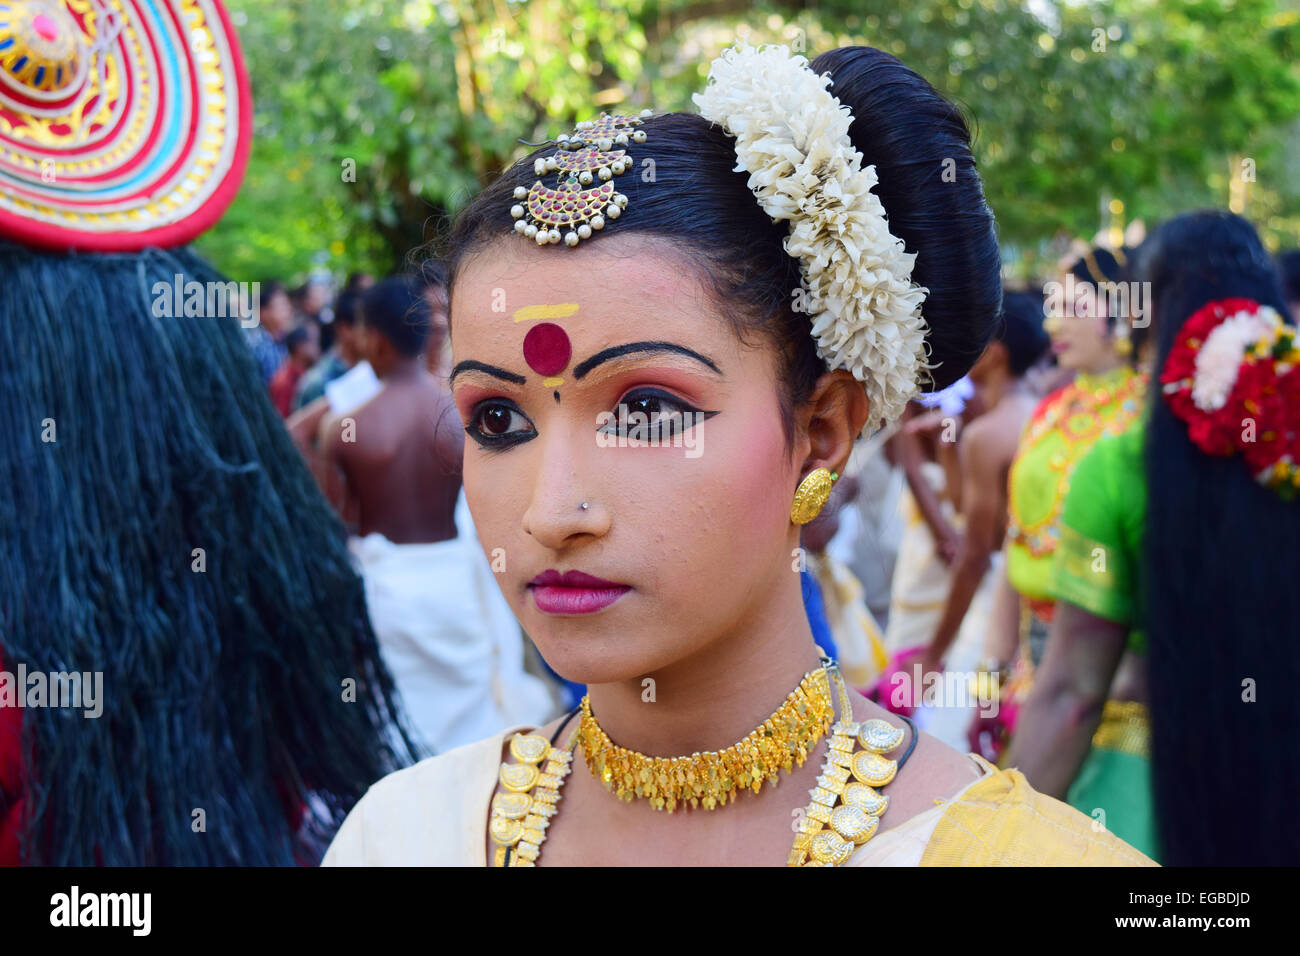 5383b93642f3 Girl with traditional dance costume at Onam Festival Procession in Kerala  India